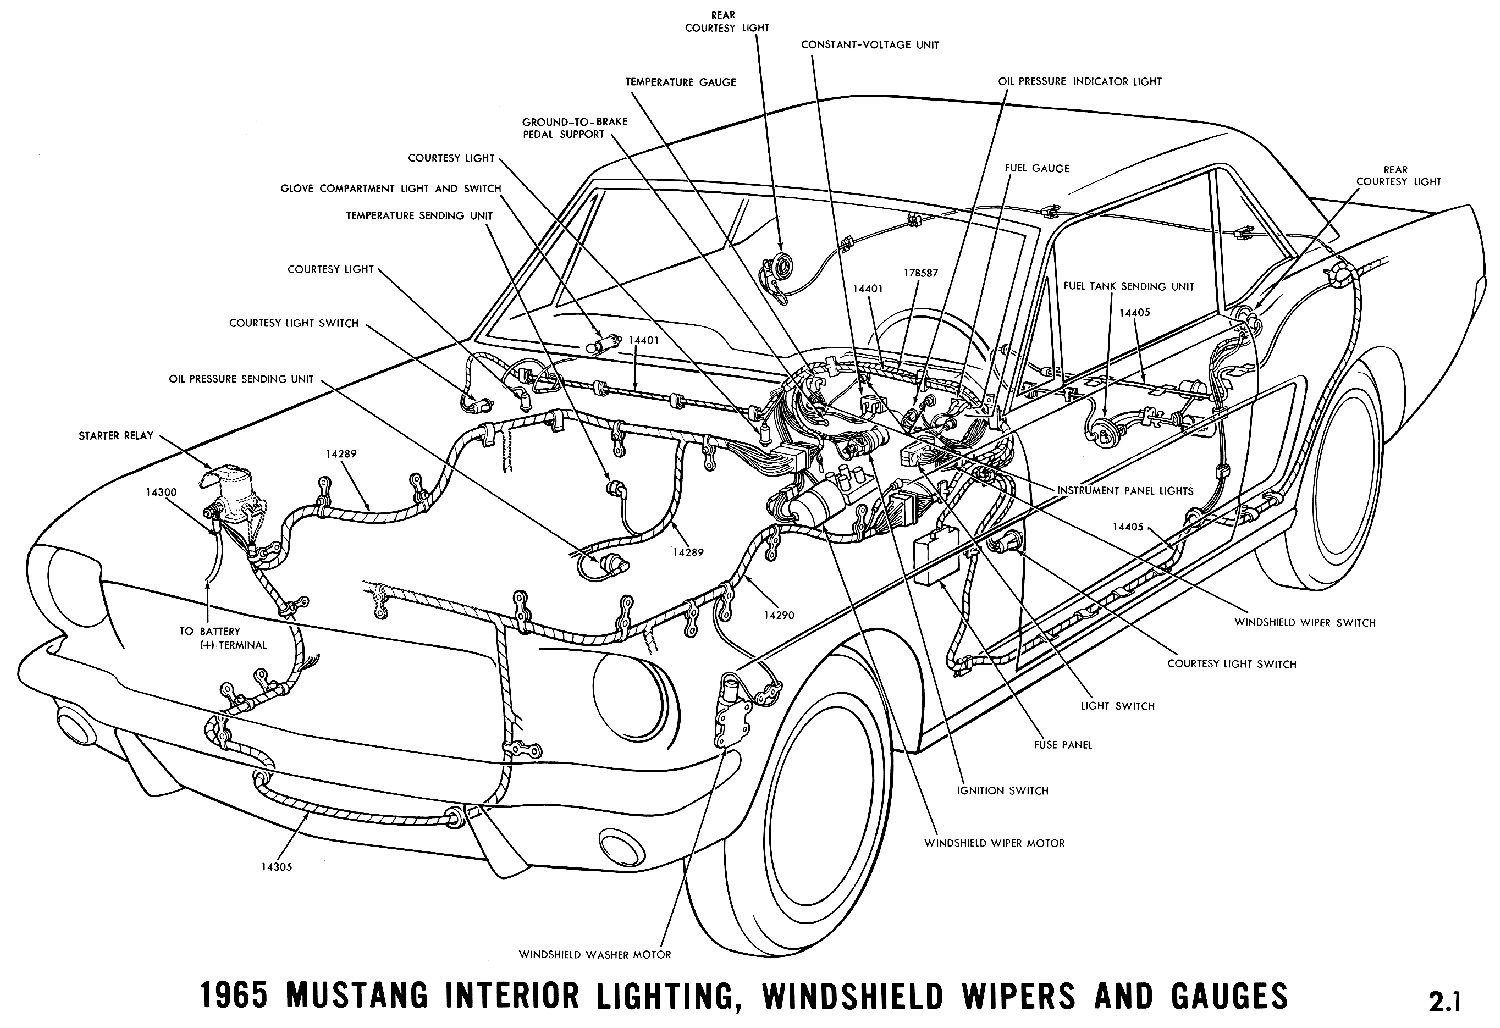 1967 Mustang Door Diagram Laurel Smart Wiring Diagrams Fuse Box Interior Full Hd Maps Locations Another World Rh Picemaps Com